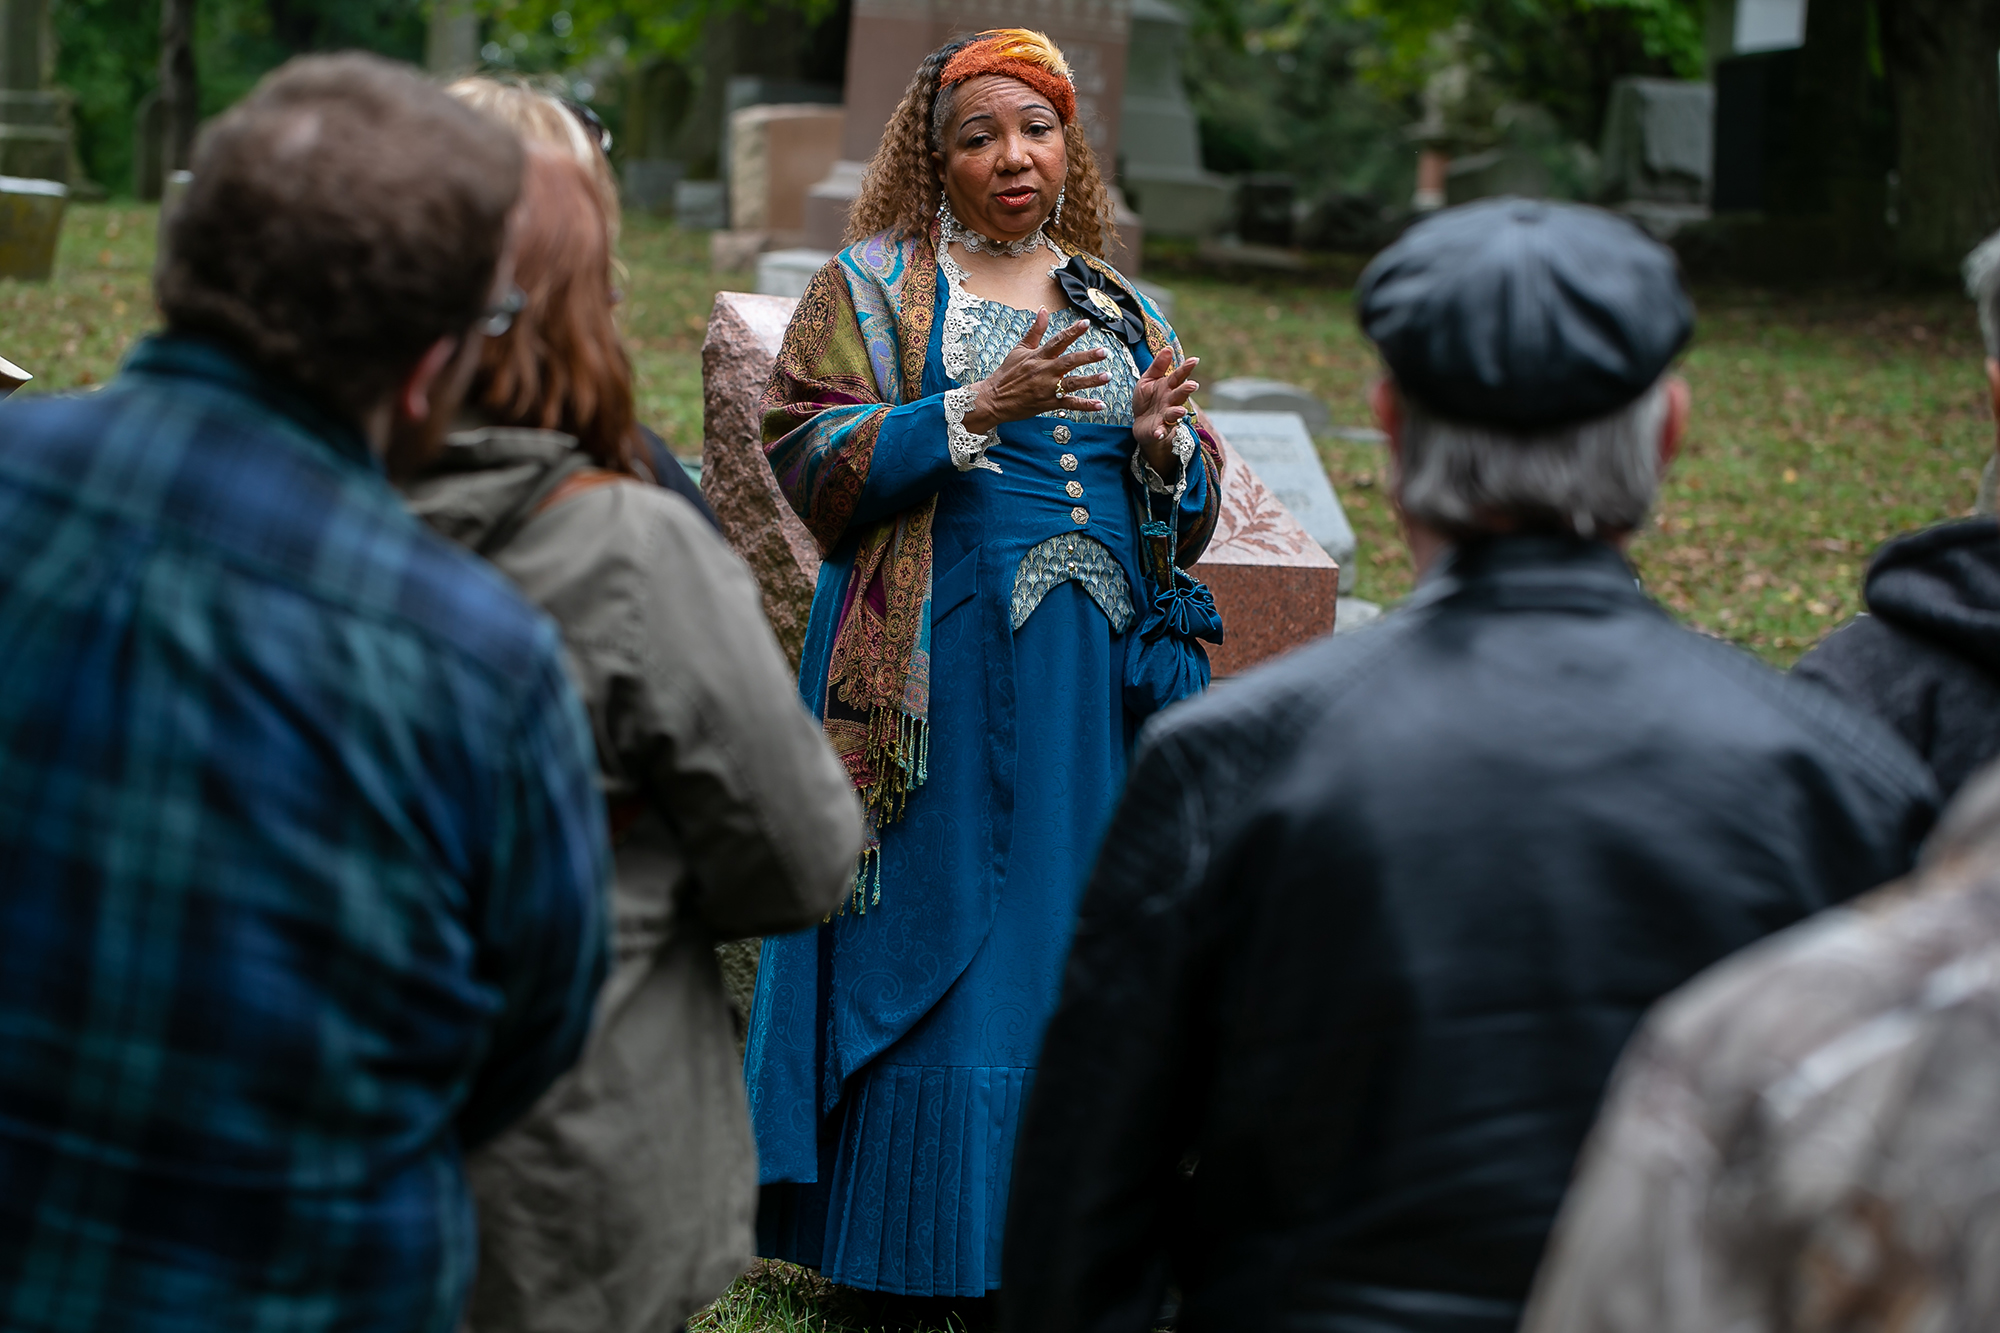 """Roni Betts portrays Martha Hicklin as she tells the story of how she came to Springfield in the 1860s with her husband, Hezkiah, and came to be the Vice President of the Illinois State Colored Historical Society during the Sangamon County Historical Society's """"Echos of Yesteryear: A Walk through Oak Ridge Cemetery"""" at the cemetery, Sunday, Oct. 14, 2018, in Springfield, Ill. [Justin L. Fowler/The State Journal-Register]"""